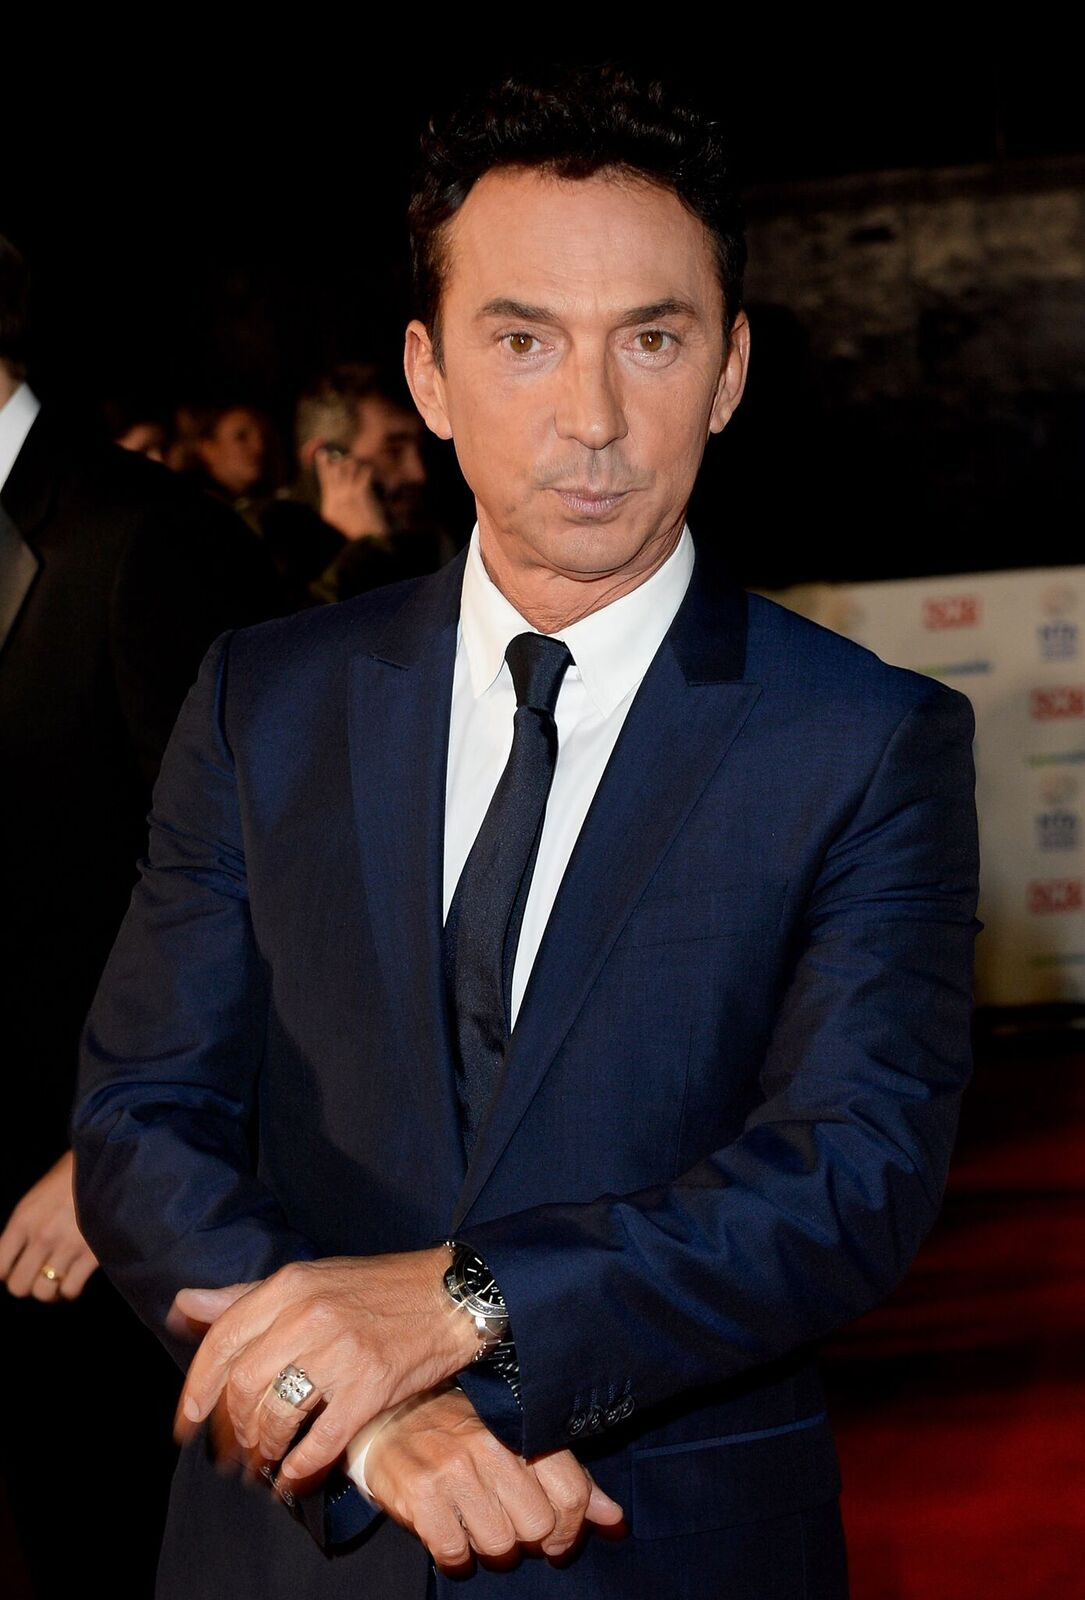 Bruno Tonioli attends the National Television Awards at the 02 Arena on January 22, 2014 in London, England | Photo: Getty Images